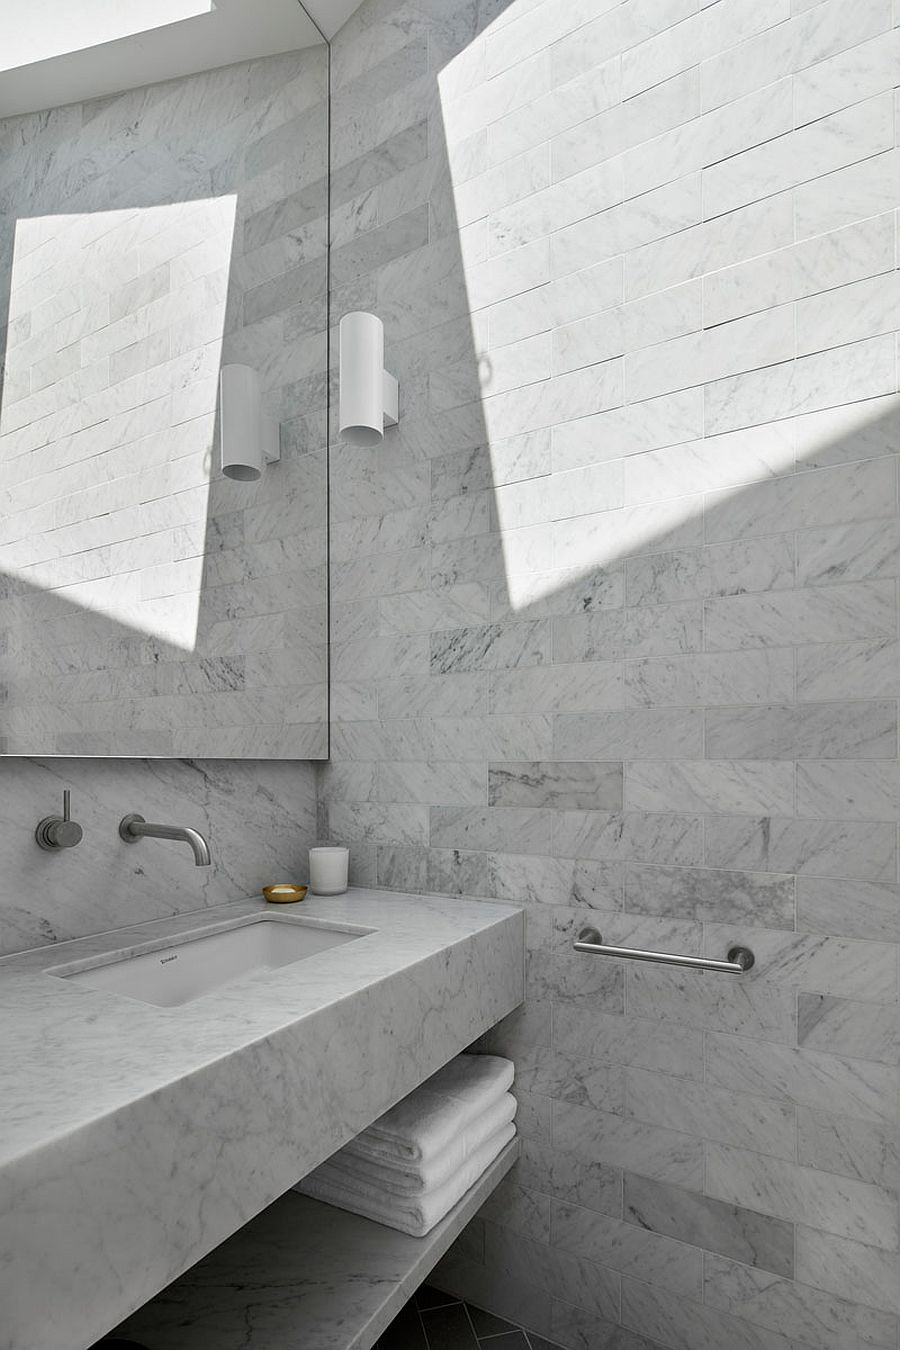 Polished contemporary bathroom in gray